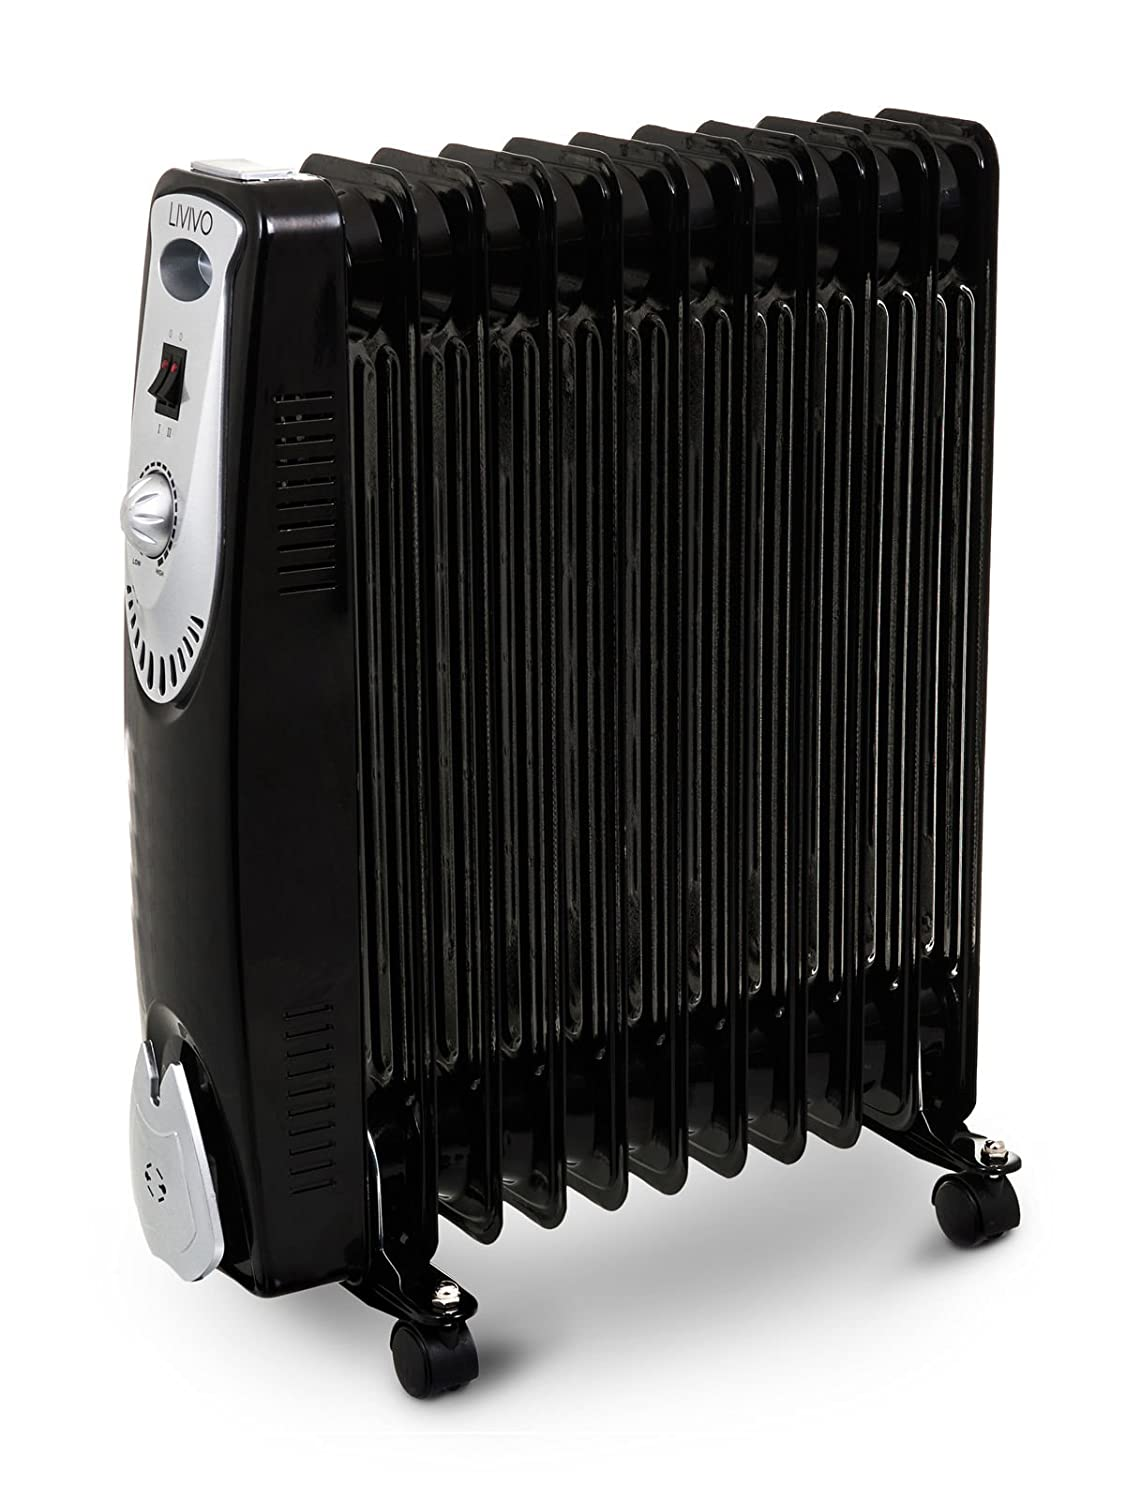 FiNeWaY@ 9 FIN 2KW PORTABLE ELECTRIC OIL FILLED RADIATOR HEATER 2000W 3 HEAT SETTINGS